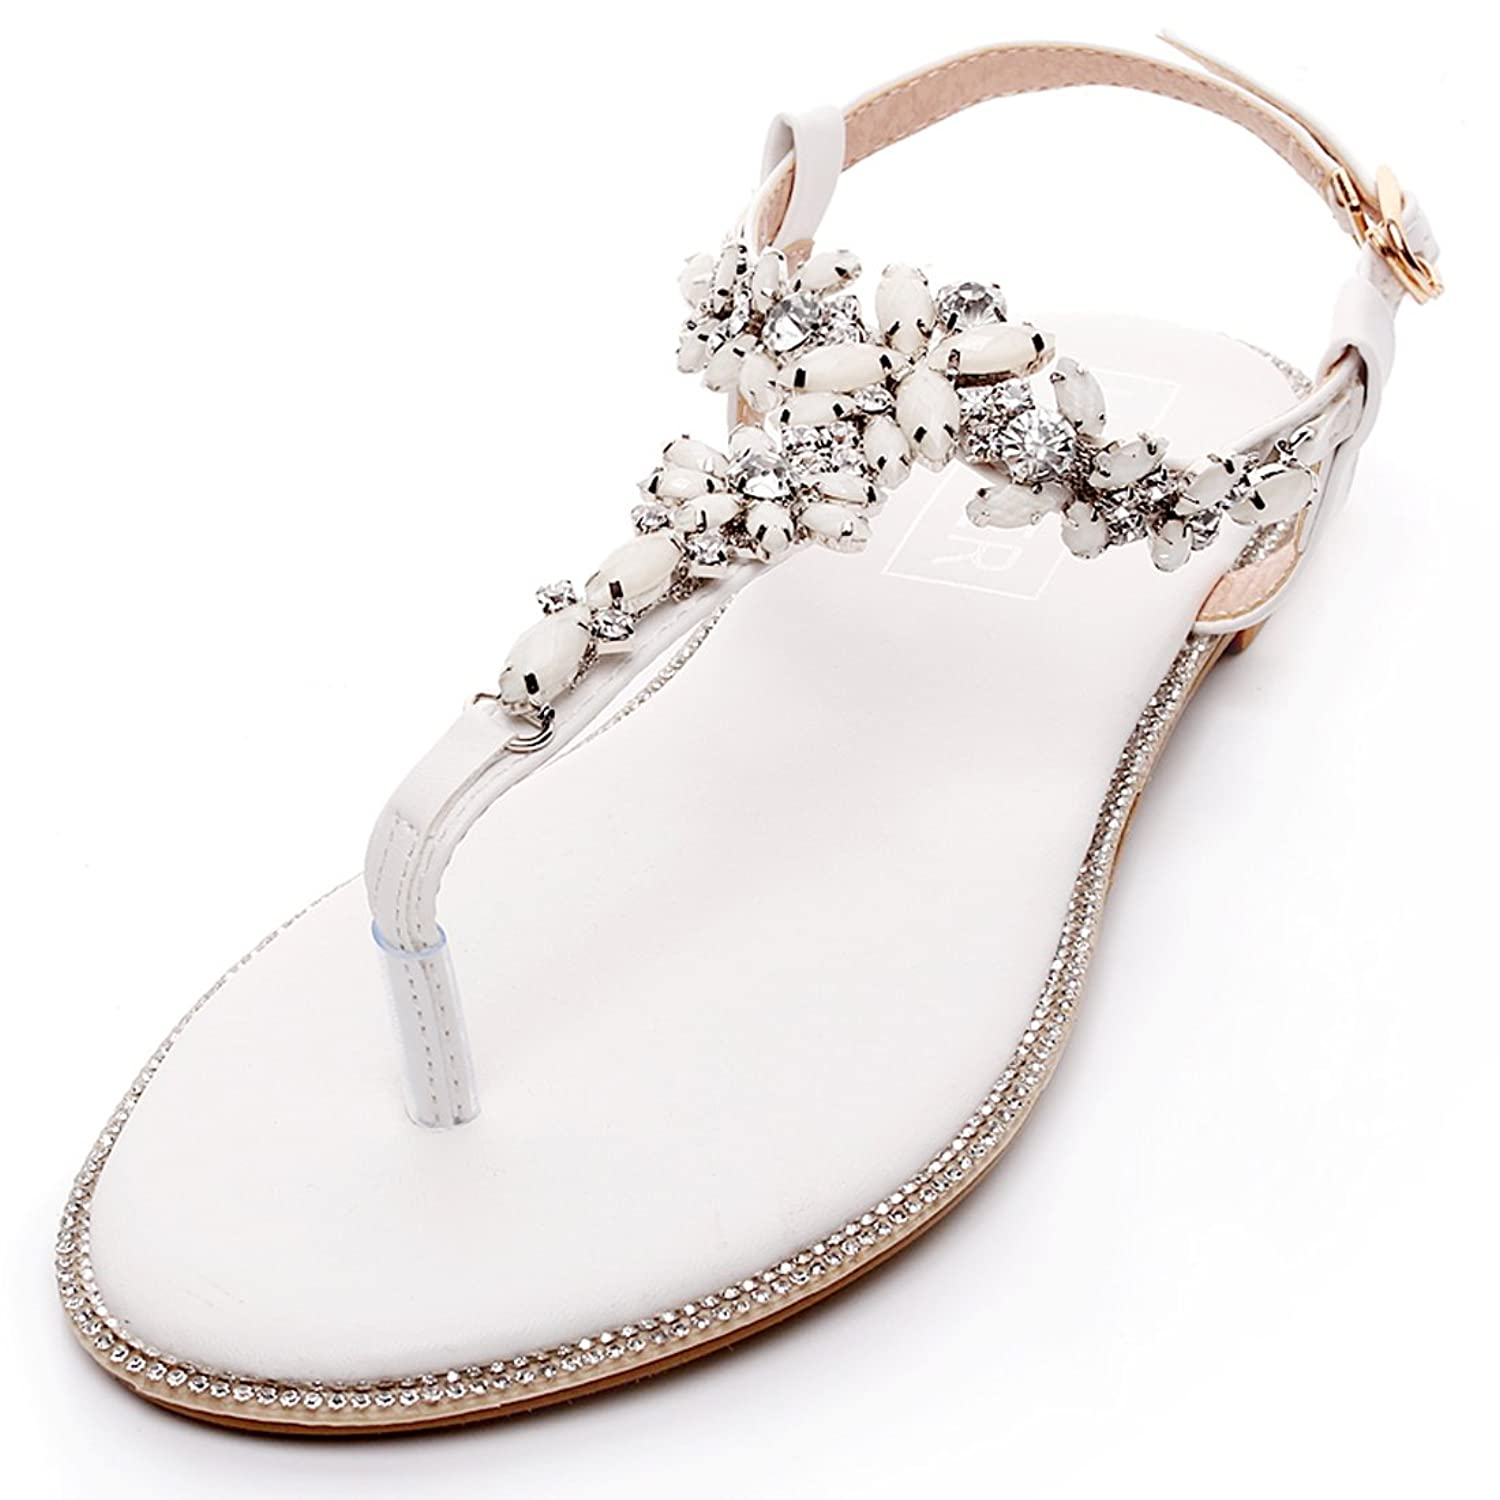 Amazon luxveer beach wedding shoes wedding flats be 02 amazon luxveer beach wedding shoes wedding flats be 02 crystals flats junglespirit Image collections